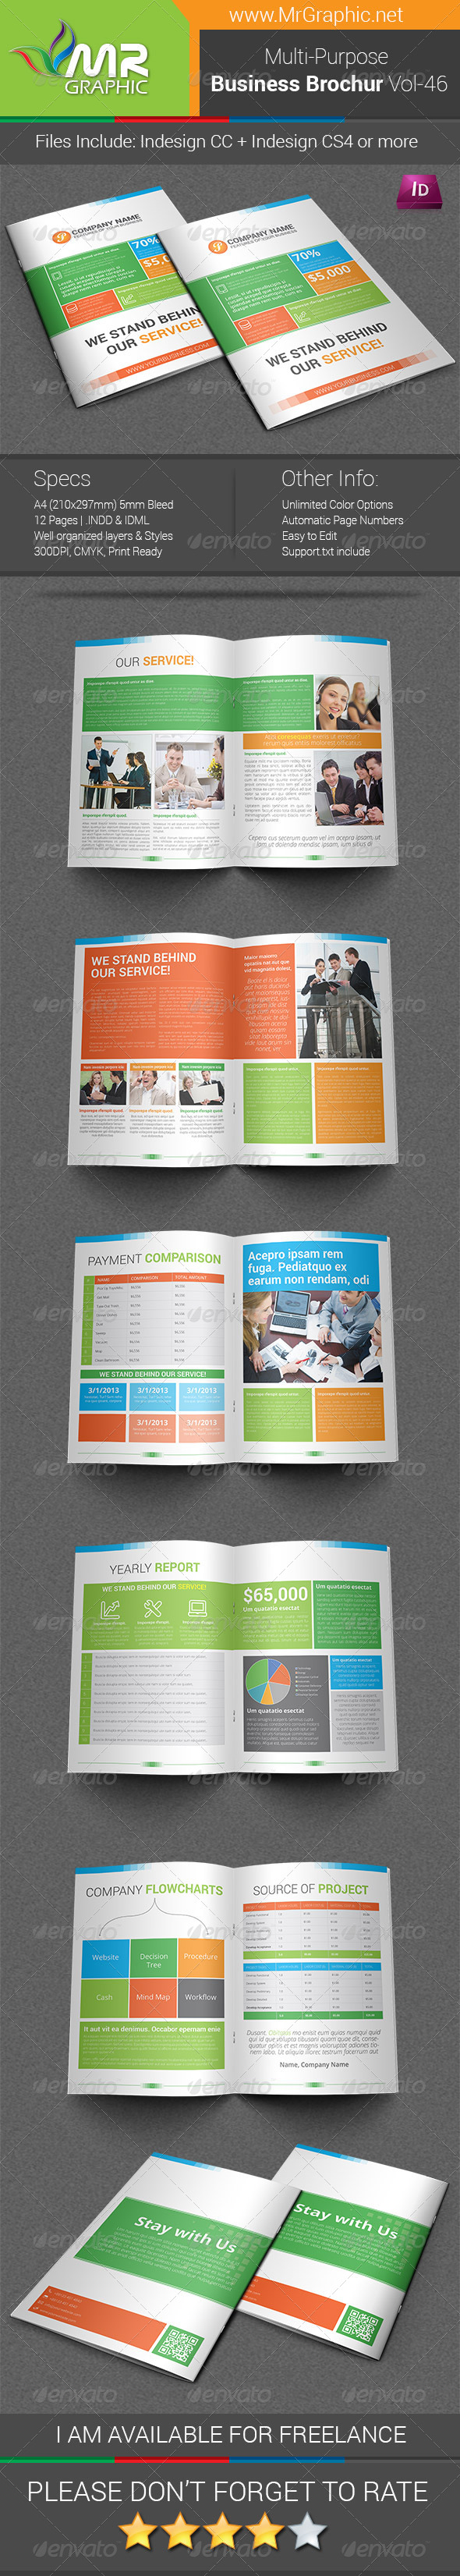 GraphicRiver Multipurpose Business Brochure Template Vol-46 6822510